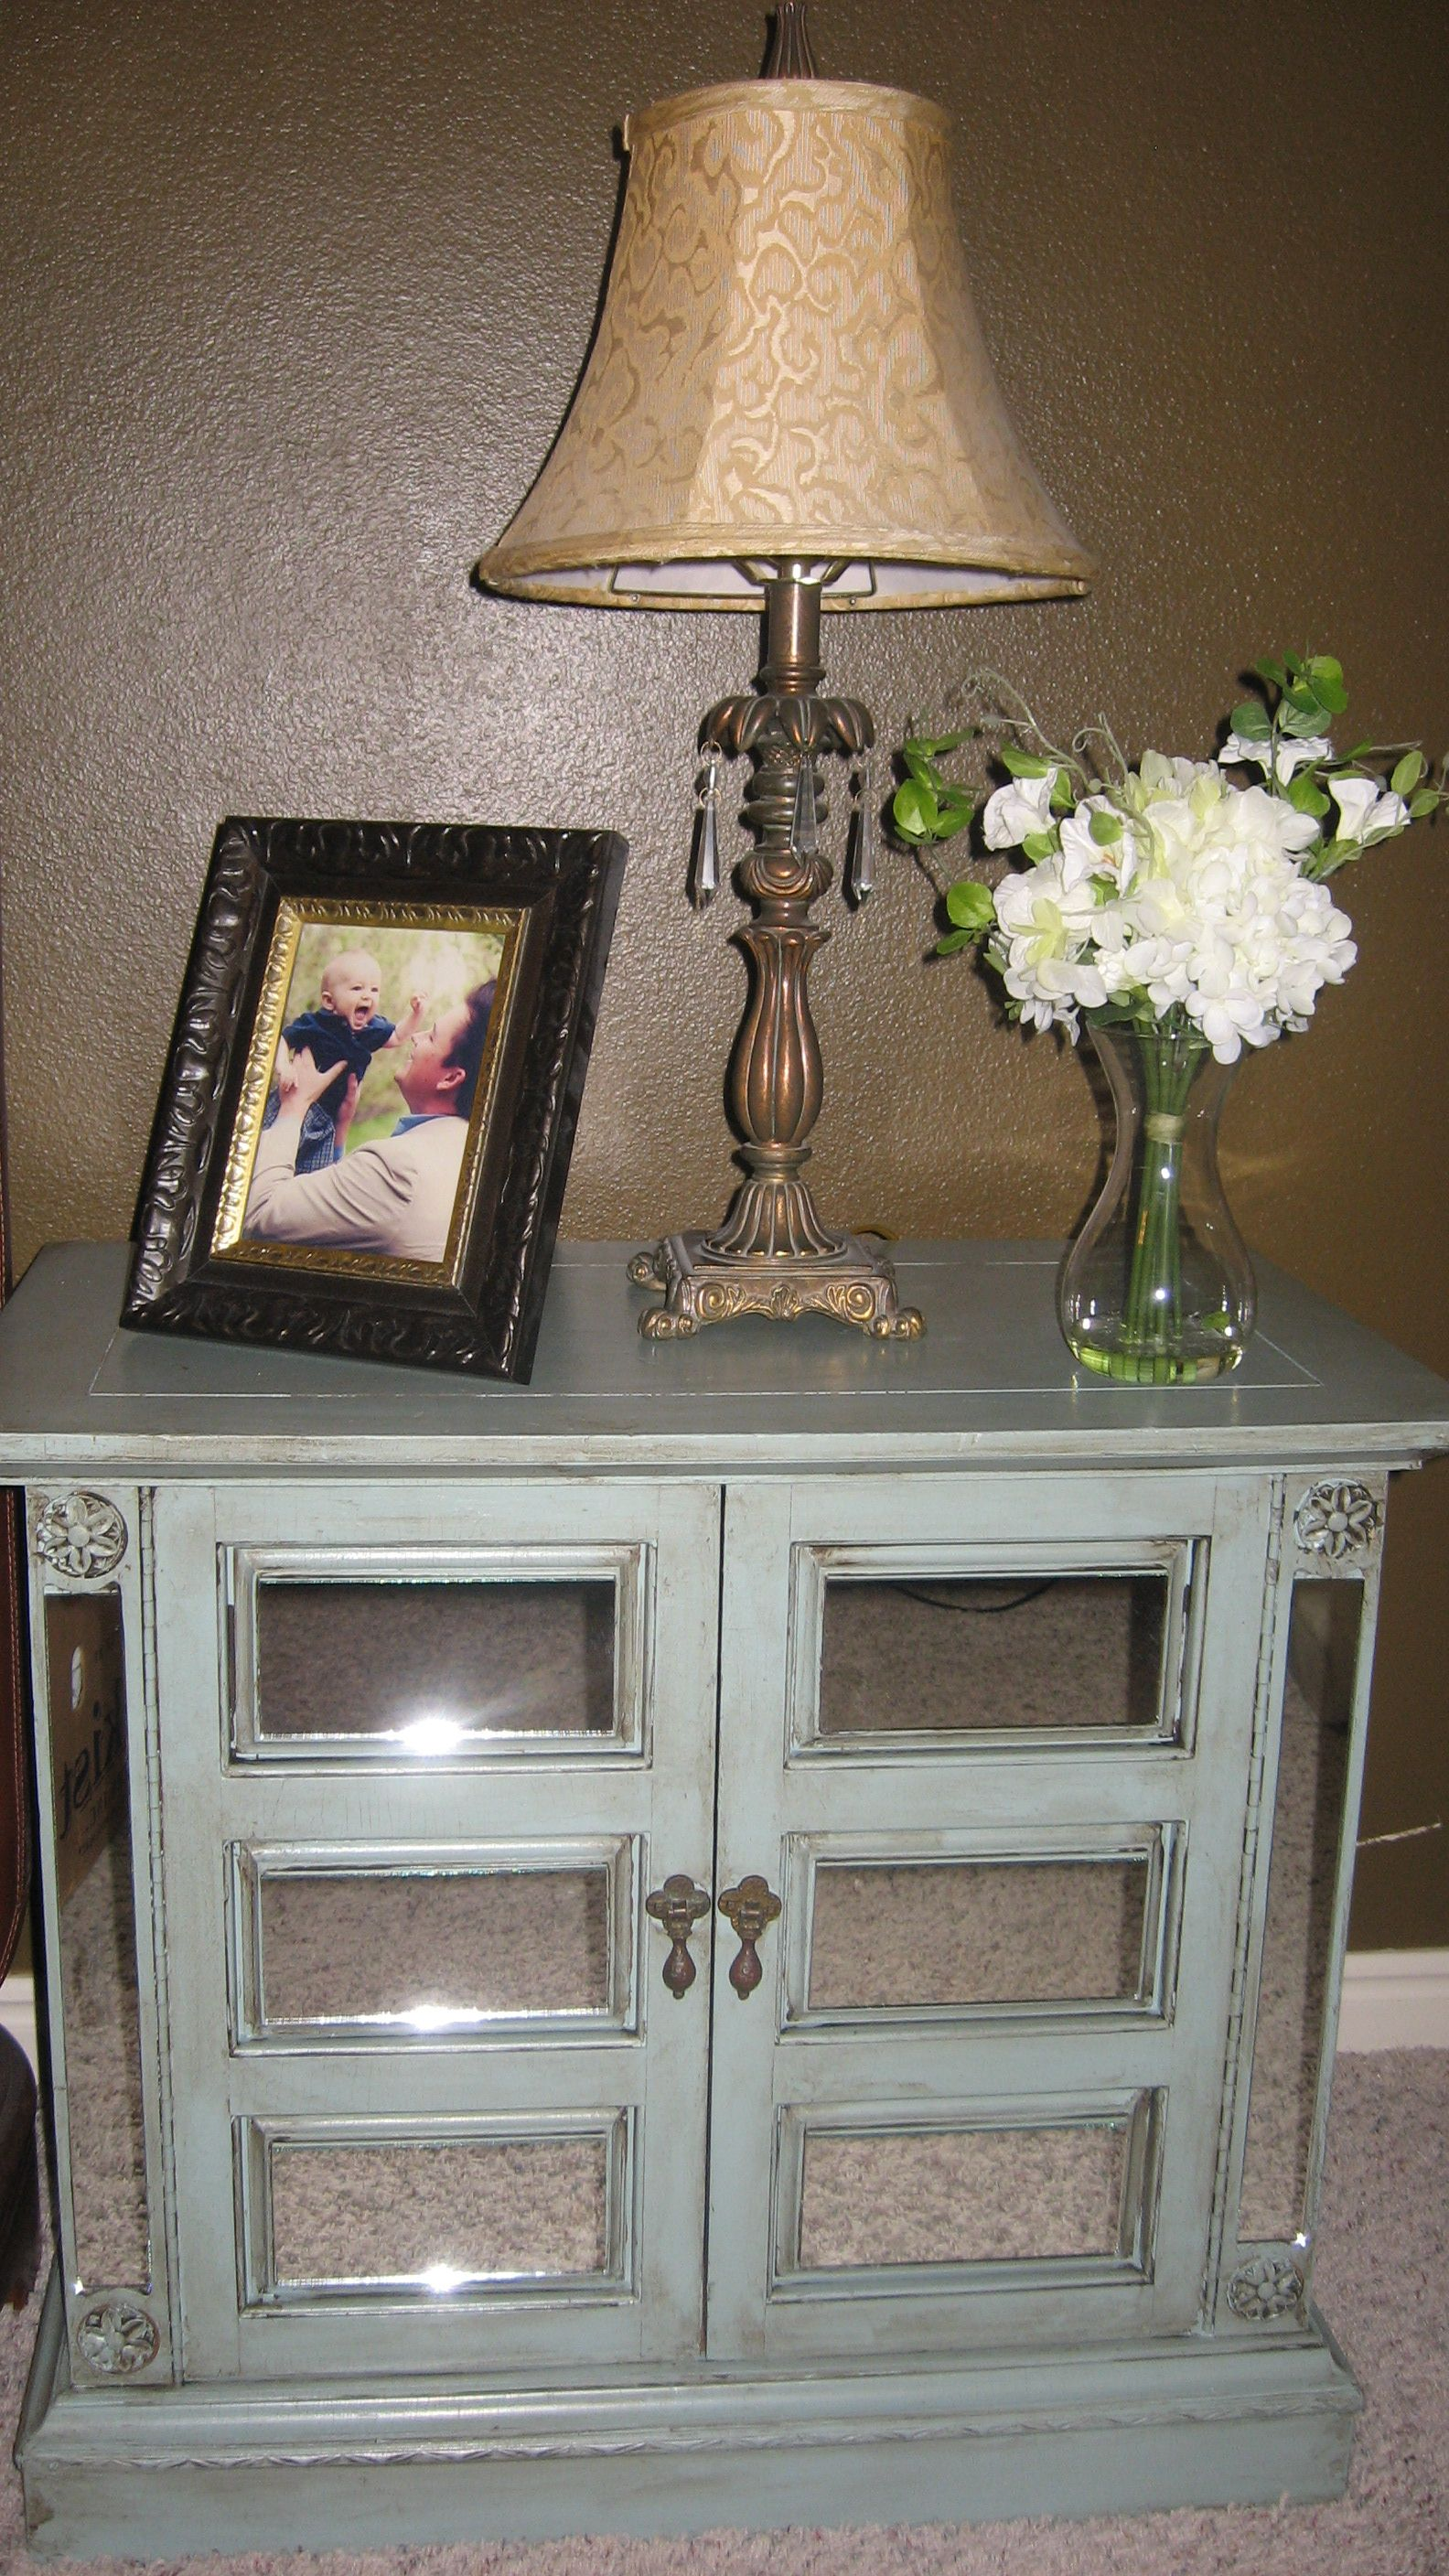 DIY Mirrored furniture I may be doing something like this on